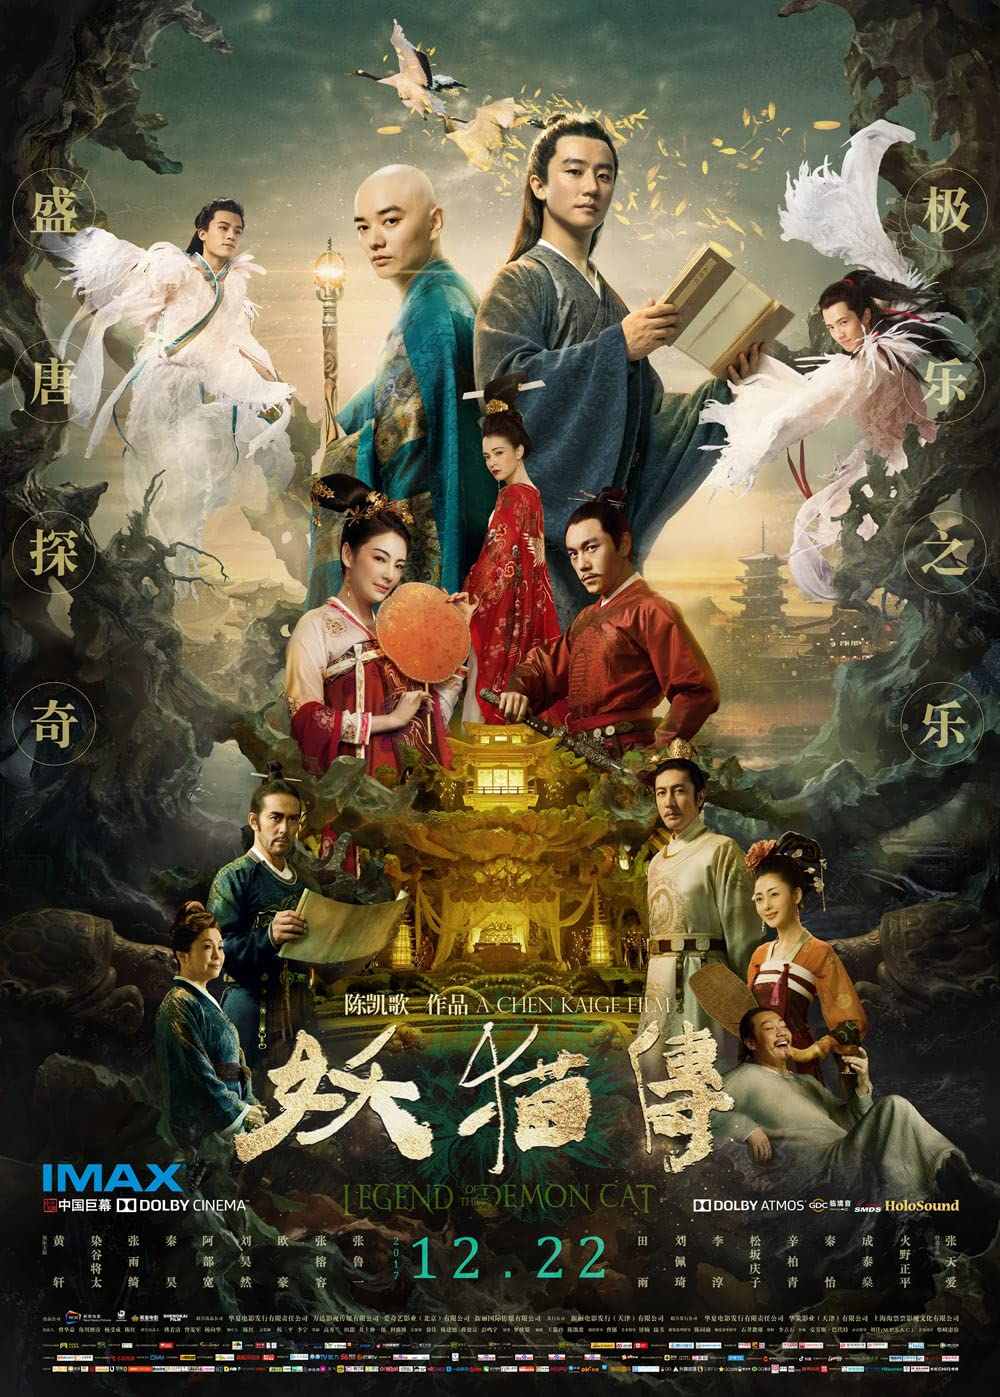 Legend of the Demon Cat (2017) Hindi Dubbed